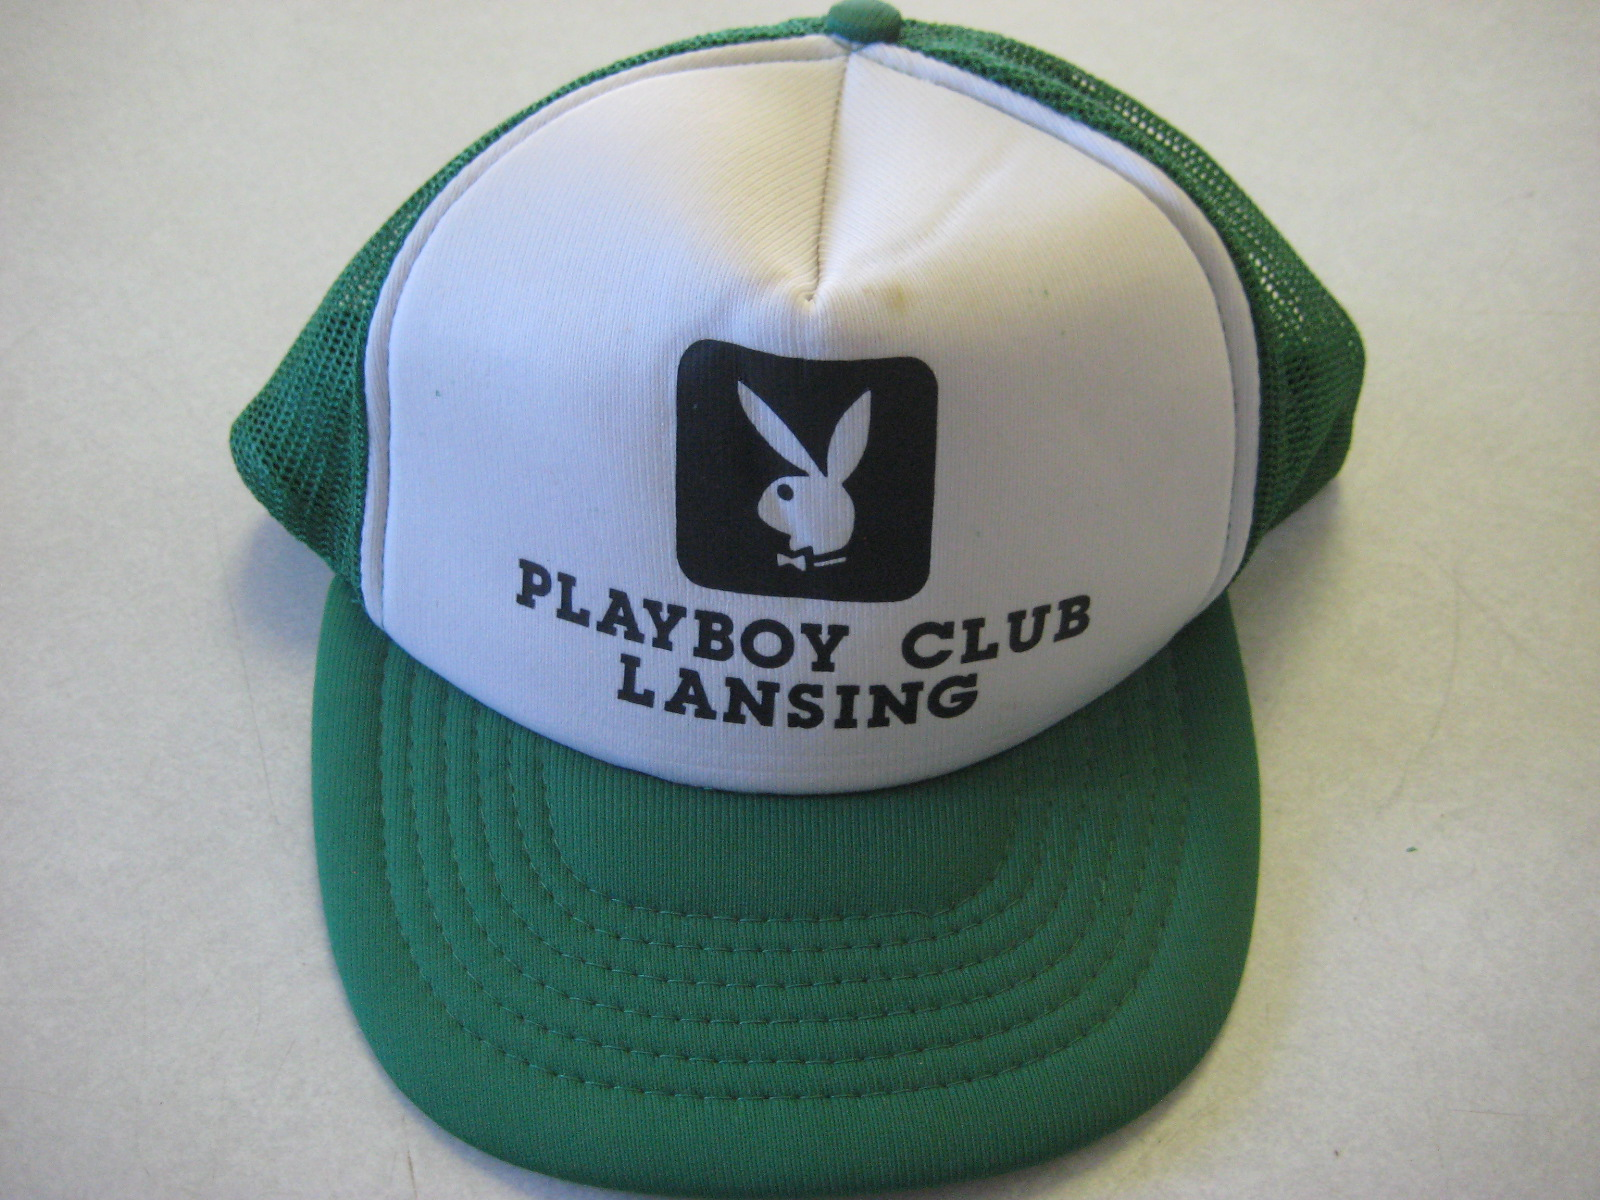 Playboy Club Lansing hat